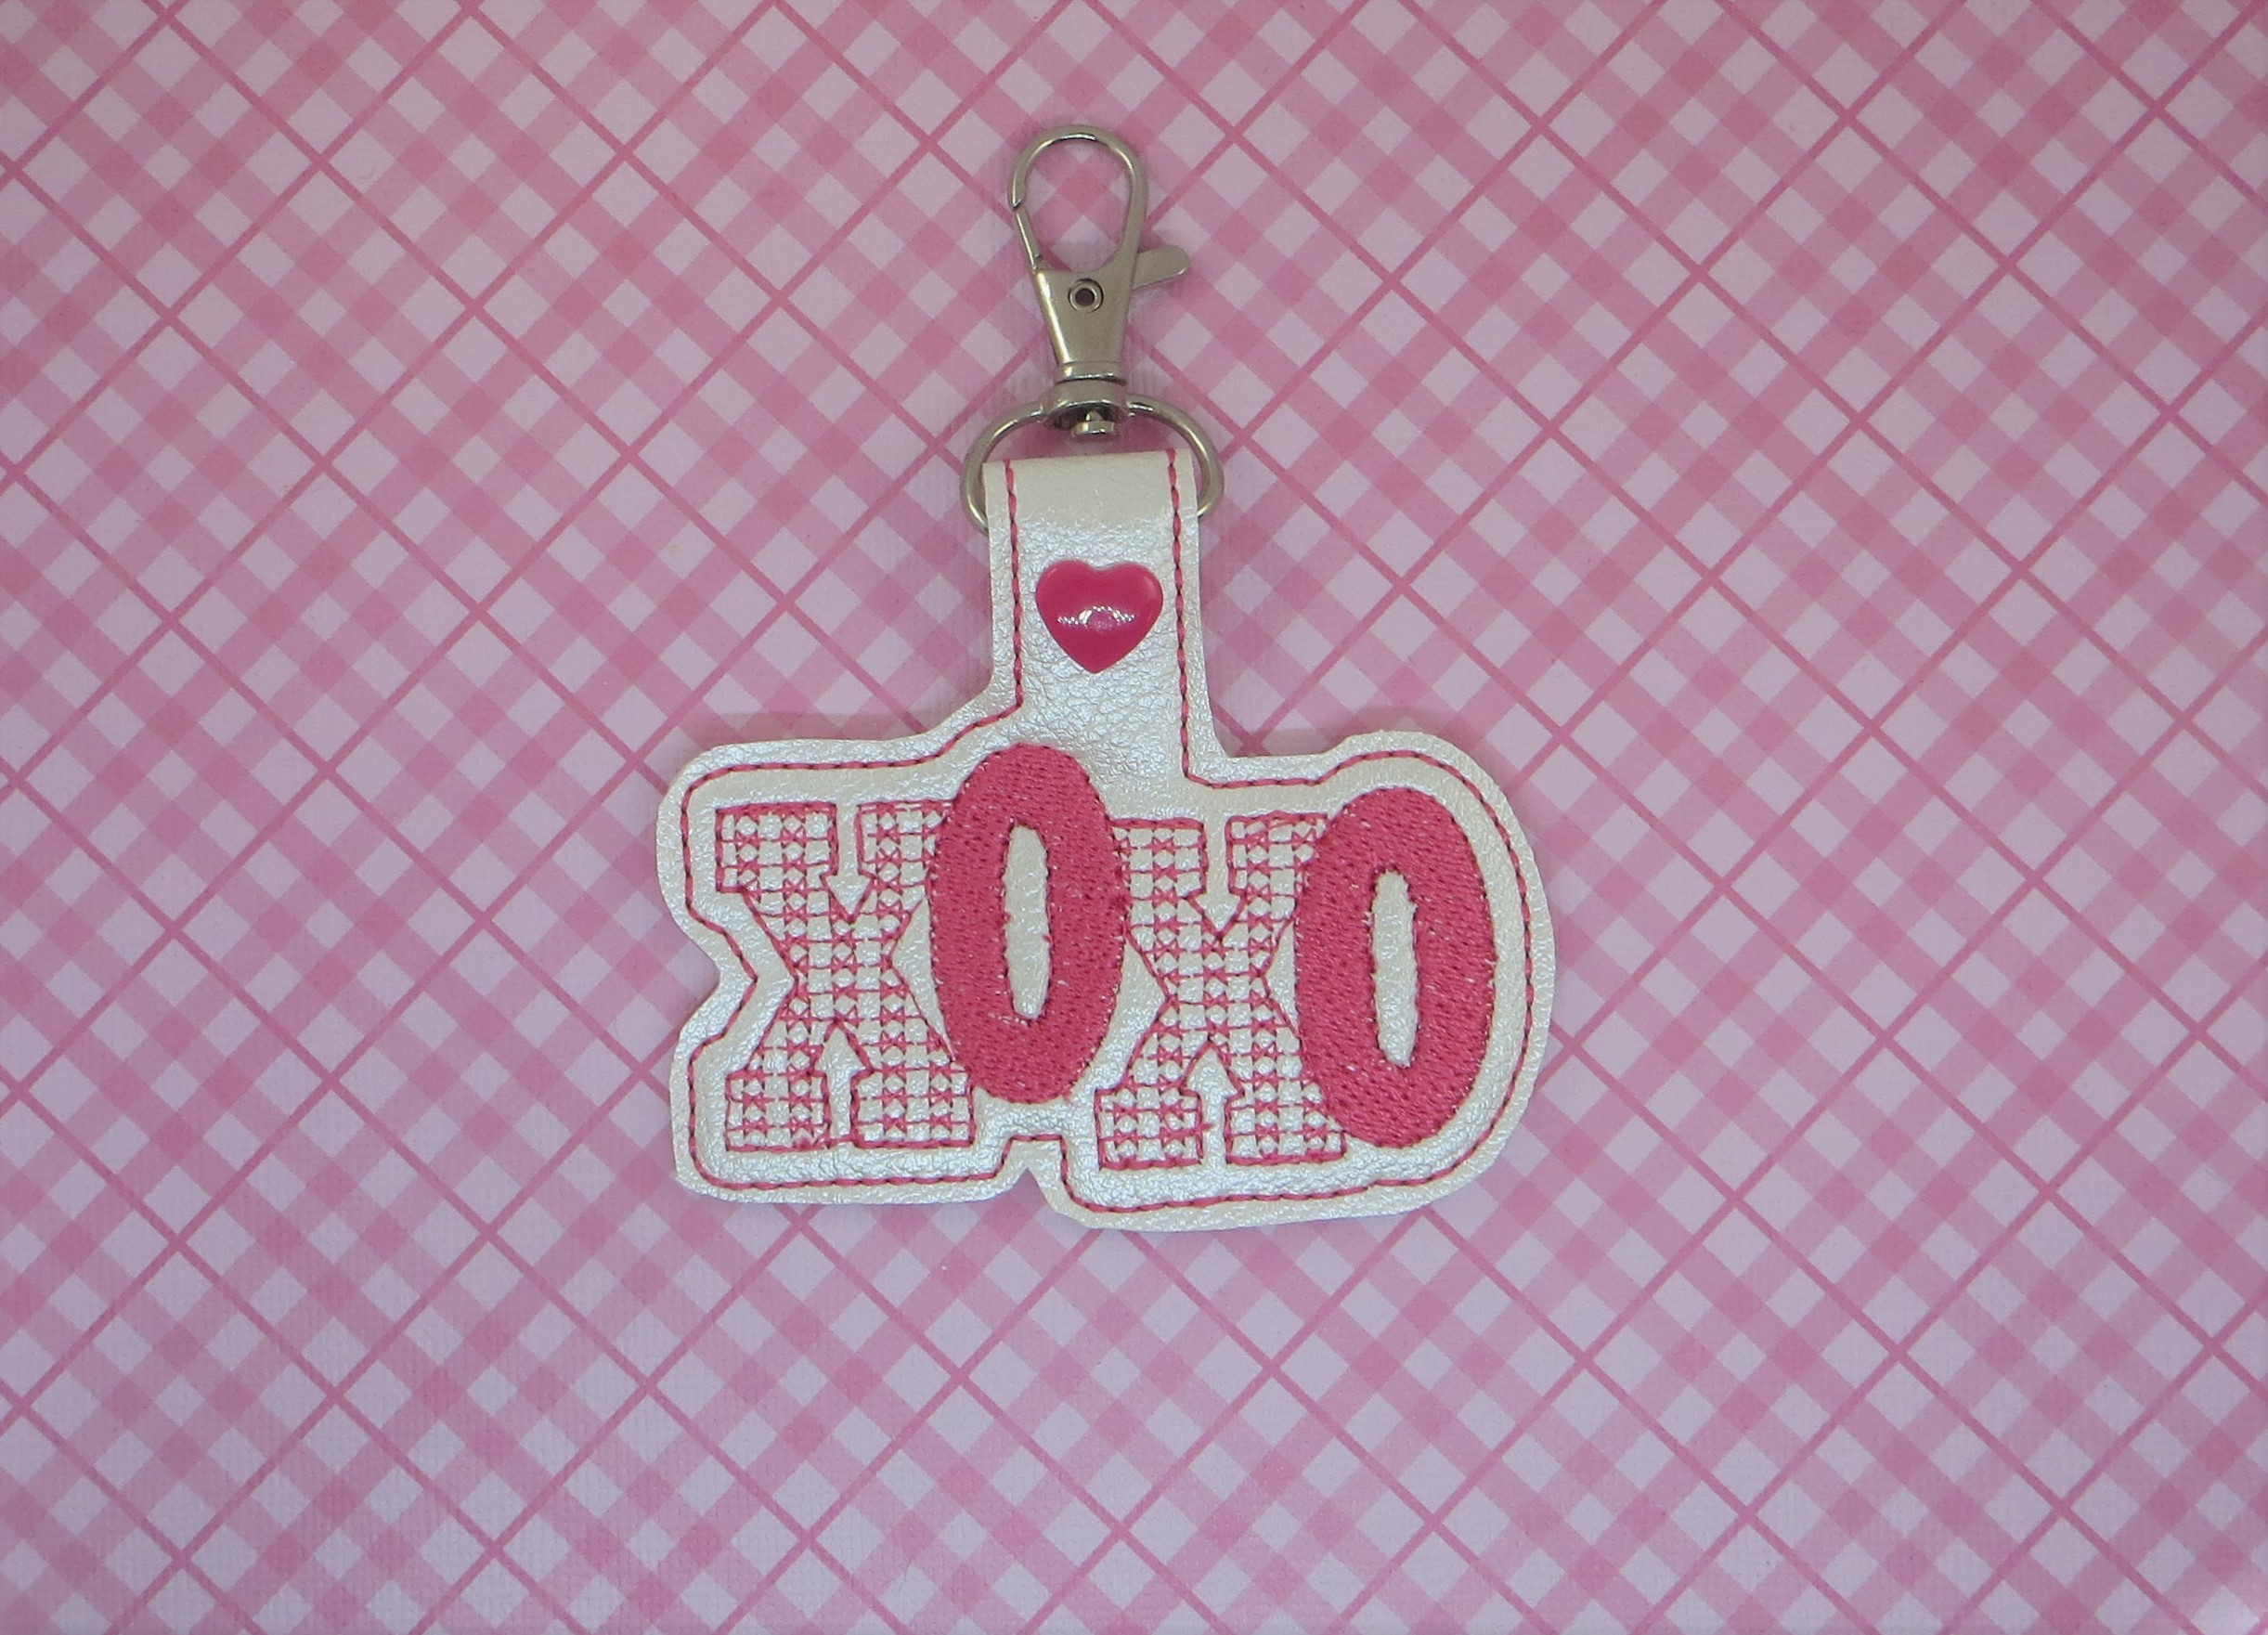 XOXO Snaptab / Keyfob Embroidery Design